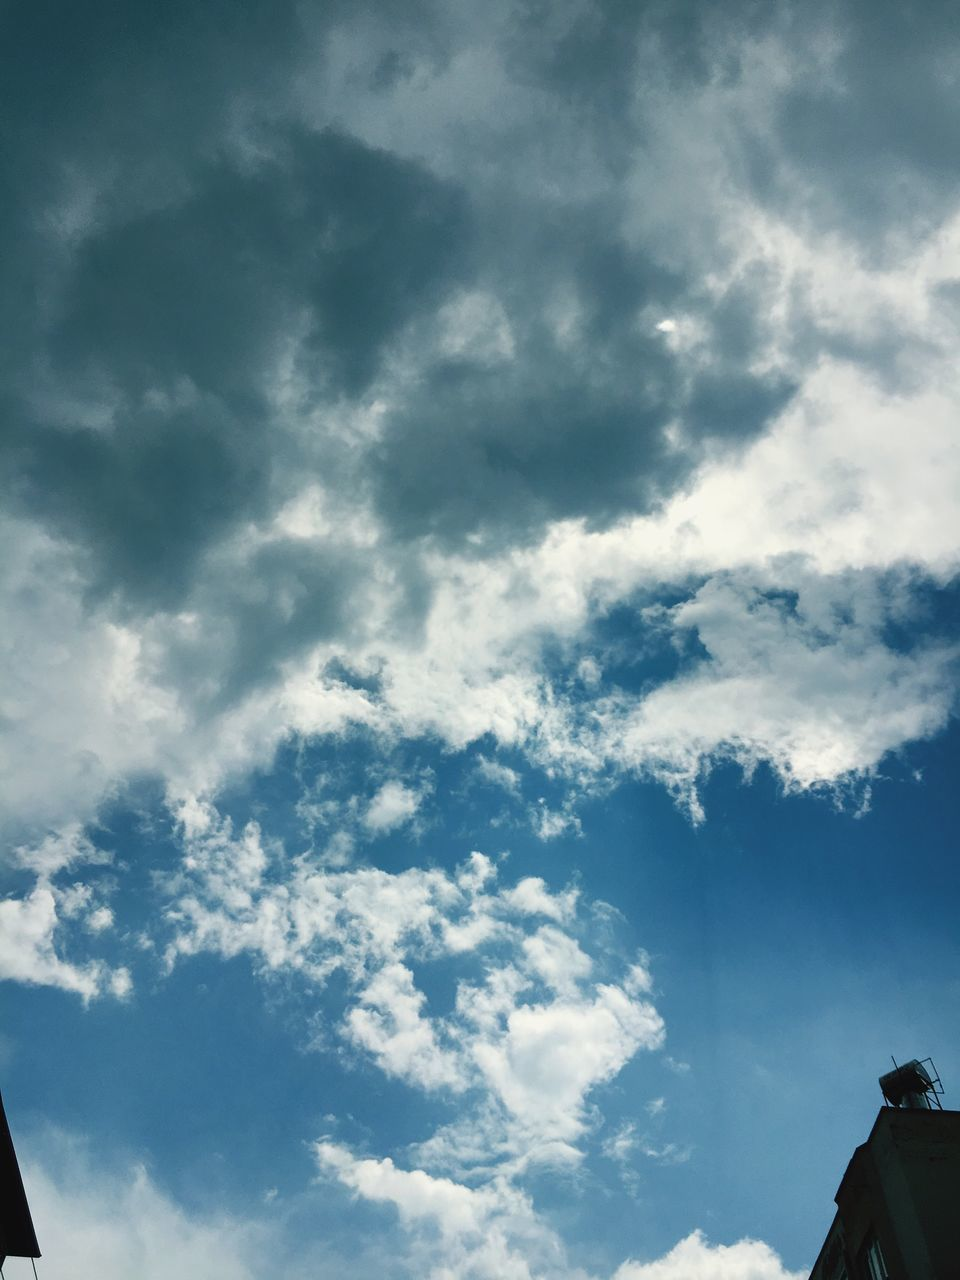 cloud - sky, sky, low angle view, beauty in nature, nature, day, no people, scenics, tranquility, outdoors, backgrounds, full frame